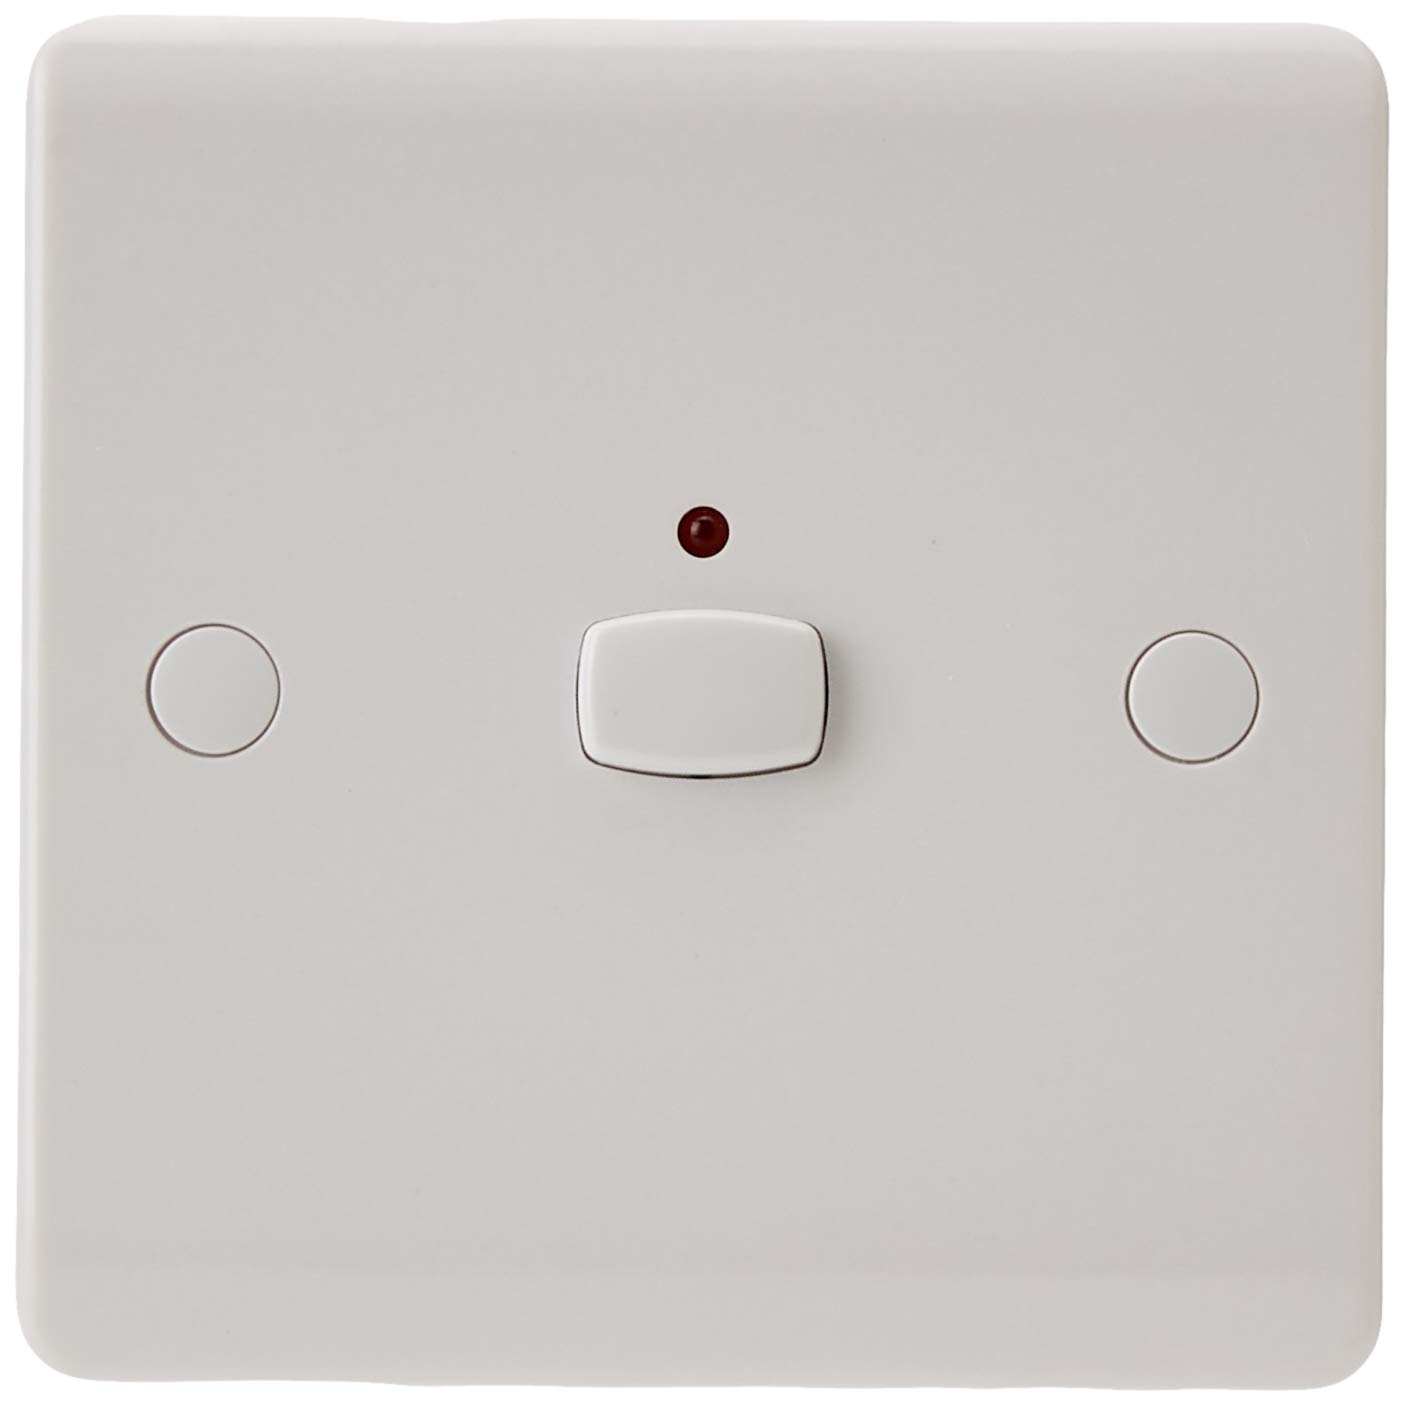 Amazon Certified Alexa Compatible Light Switch Mihome Gateway Symbols Single Pole Control Double Required Diy Tools